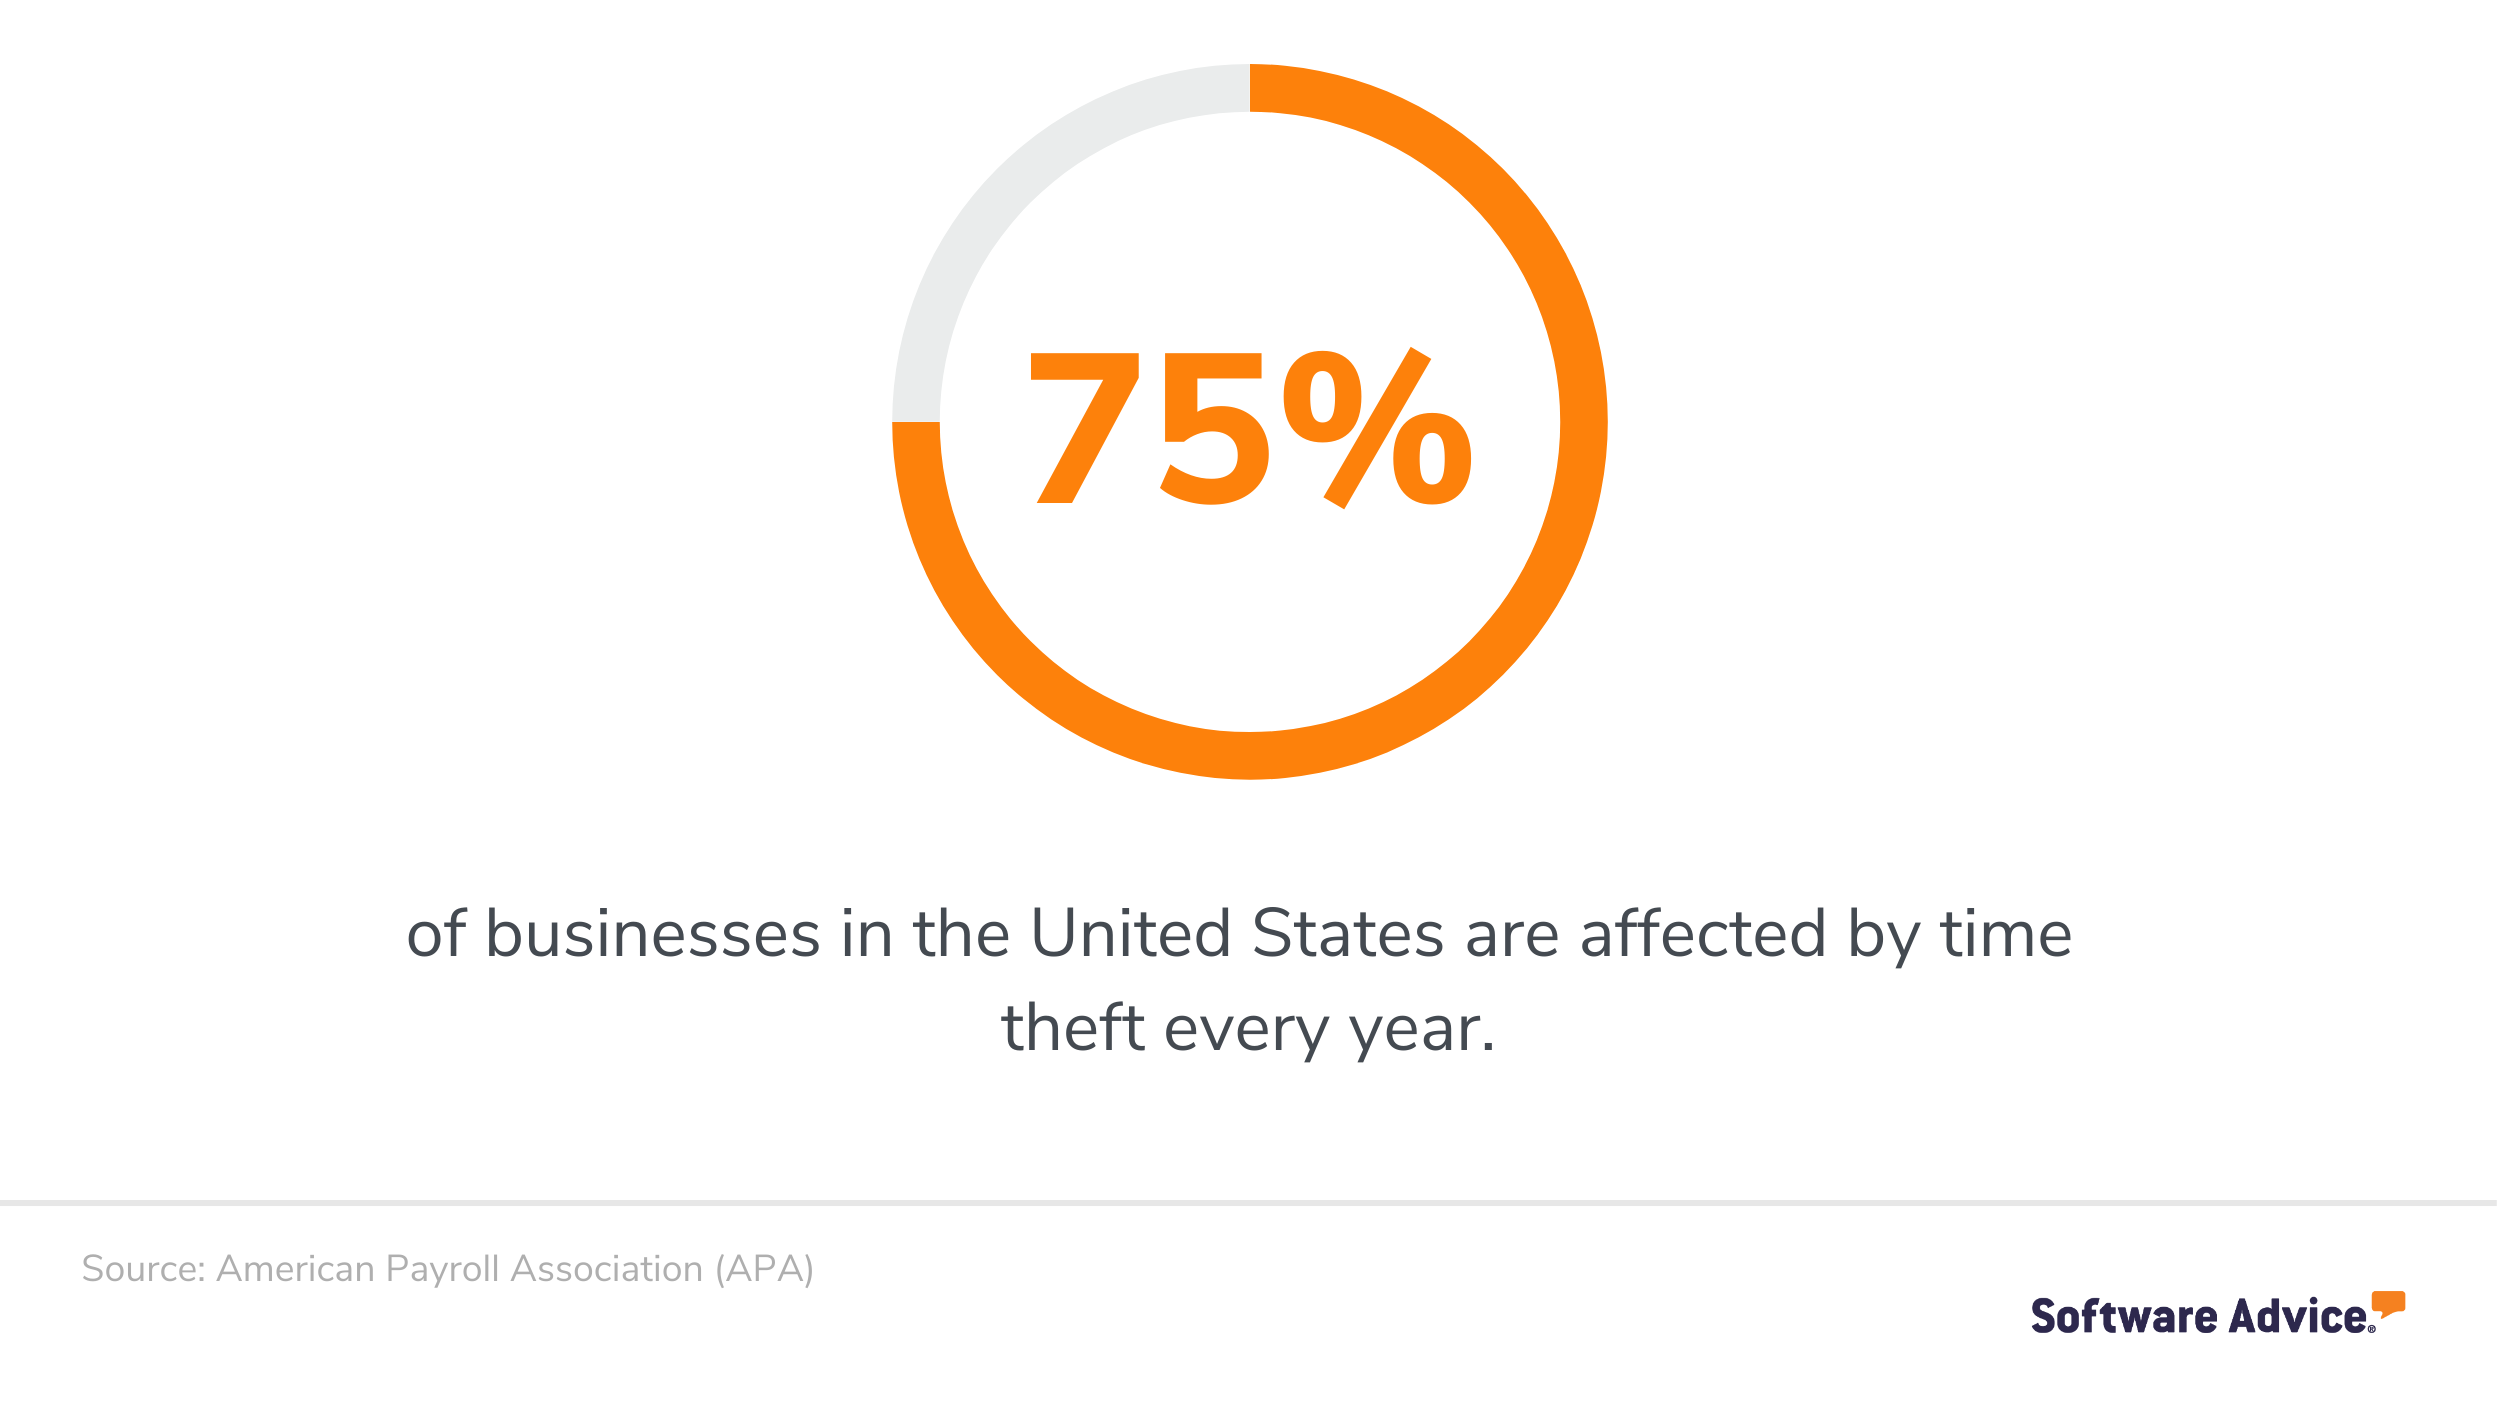 Payroll theft in the US